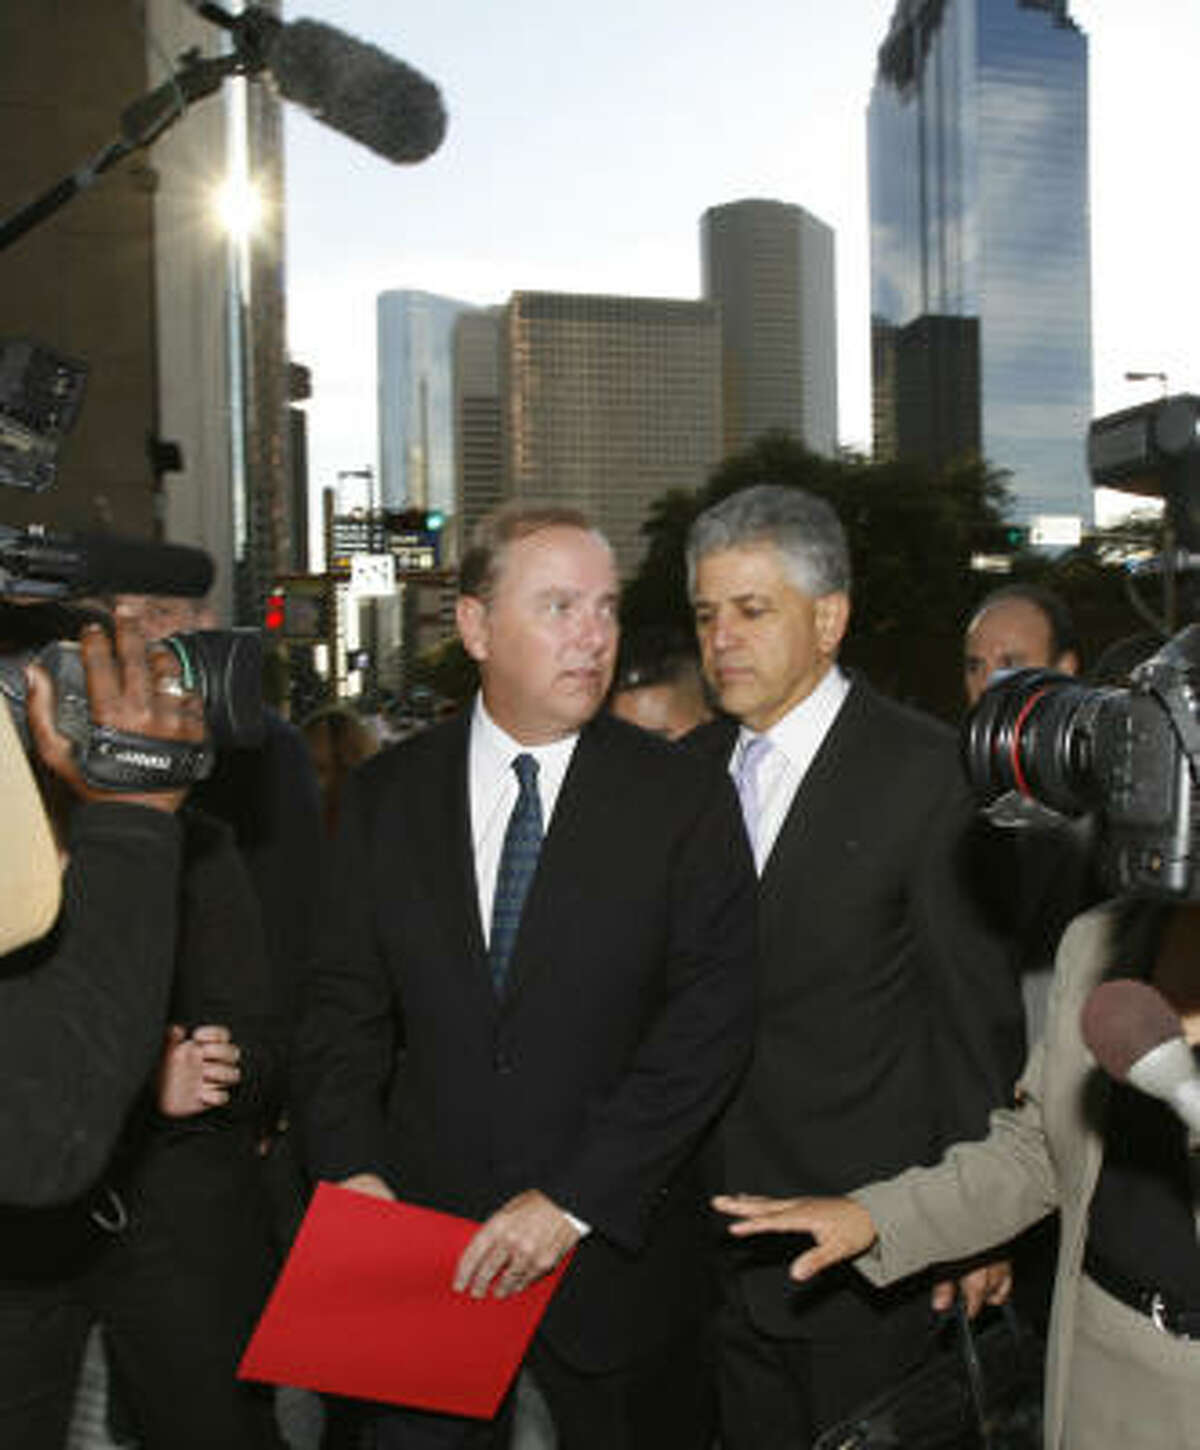 Former Enron CEO Jeff Skilling, left, shown leaving federal court in 2006 with attorney Daniel Petrocelli, is in prison for his role in Enron's downfall. On Thursday, however, the Supreme Court ordered a lower court to review his convictions.